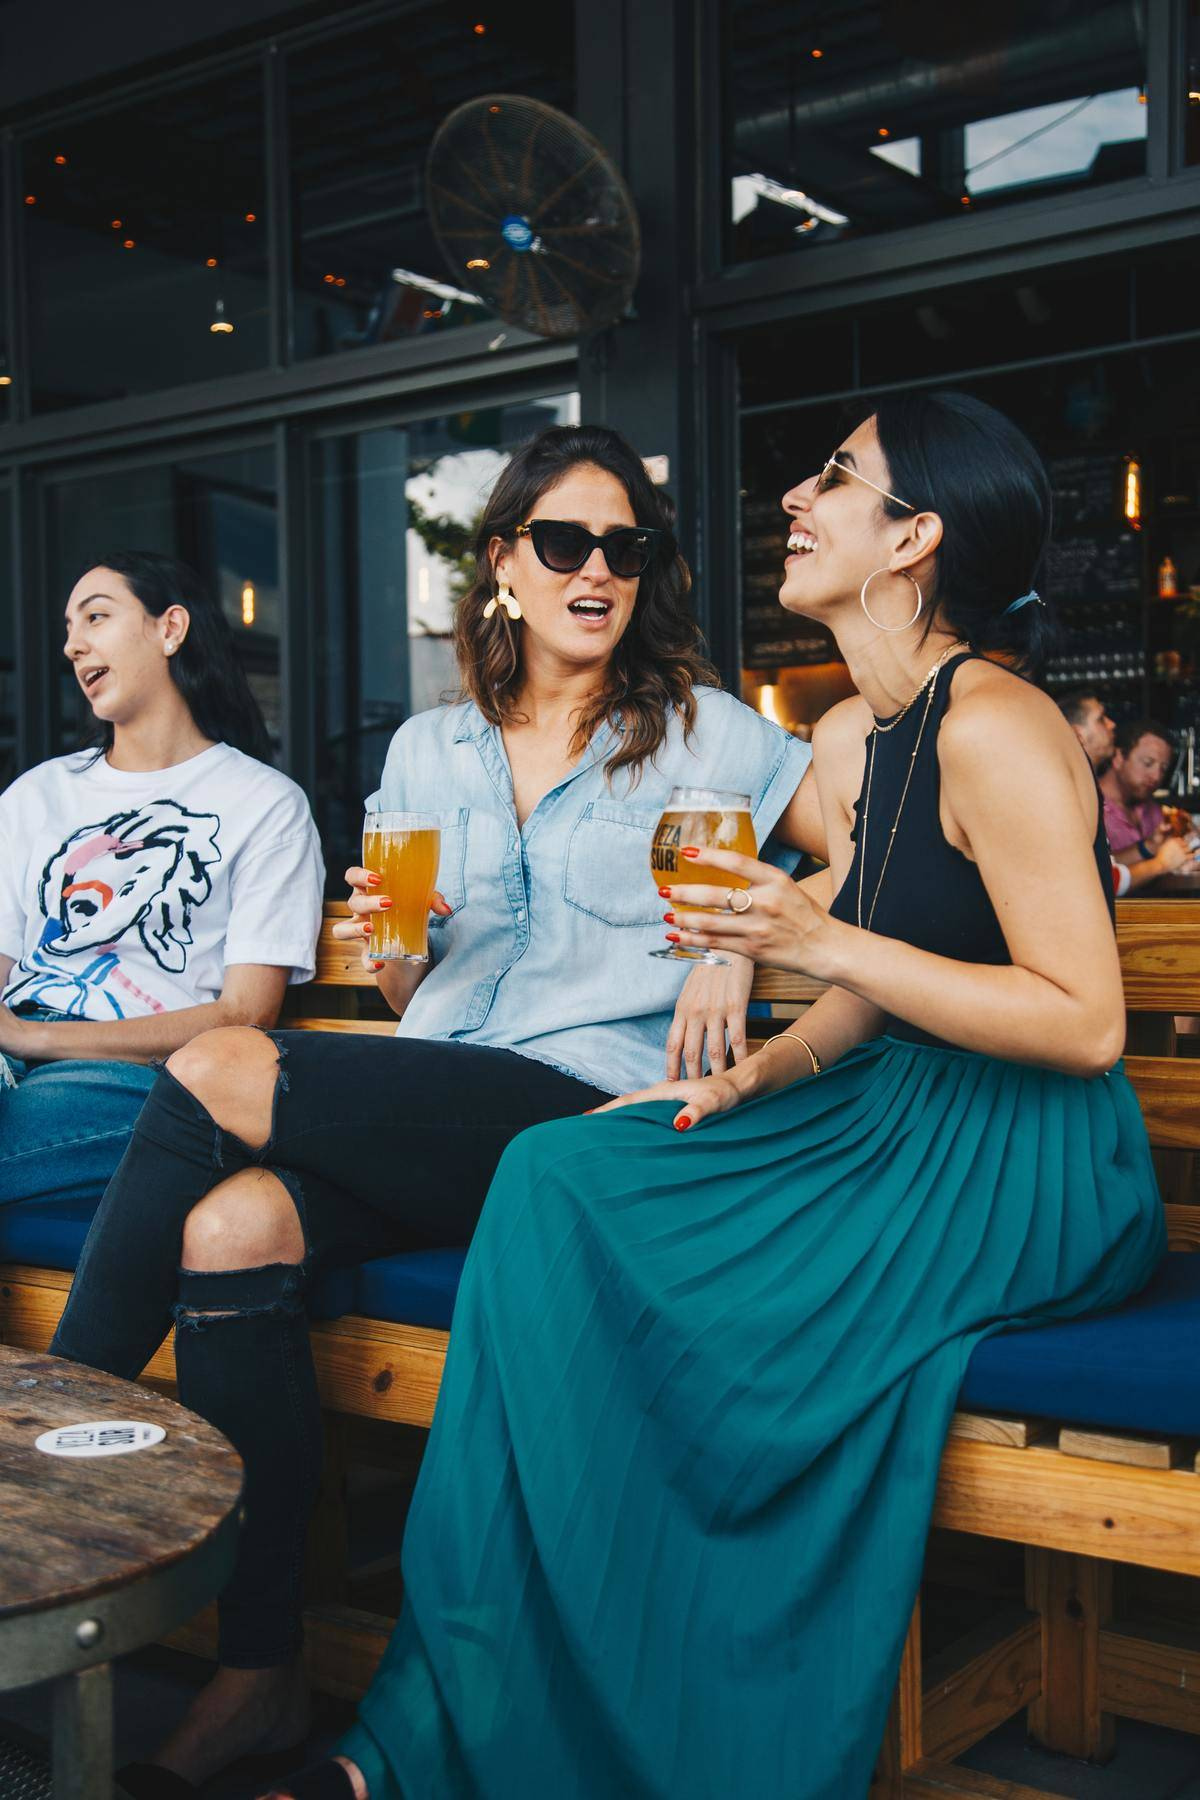 People laughing and talking on restaurant patio